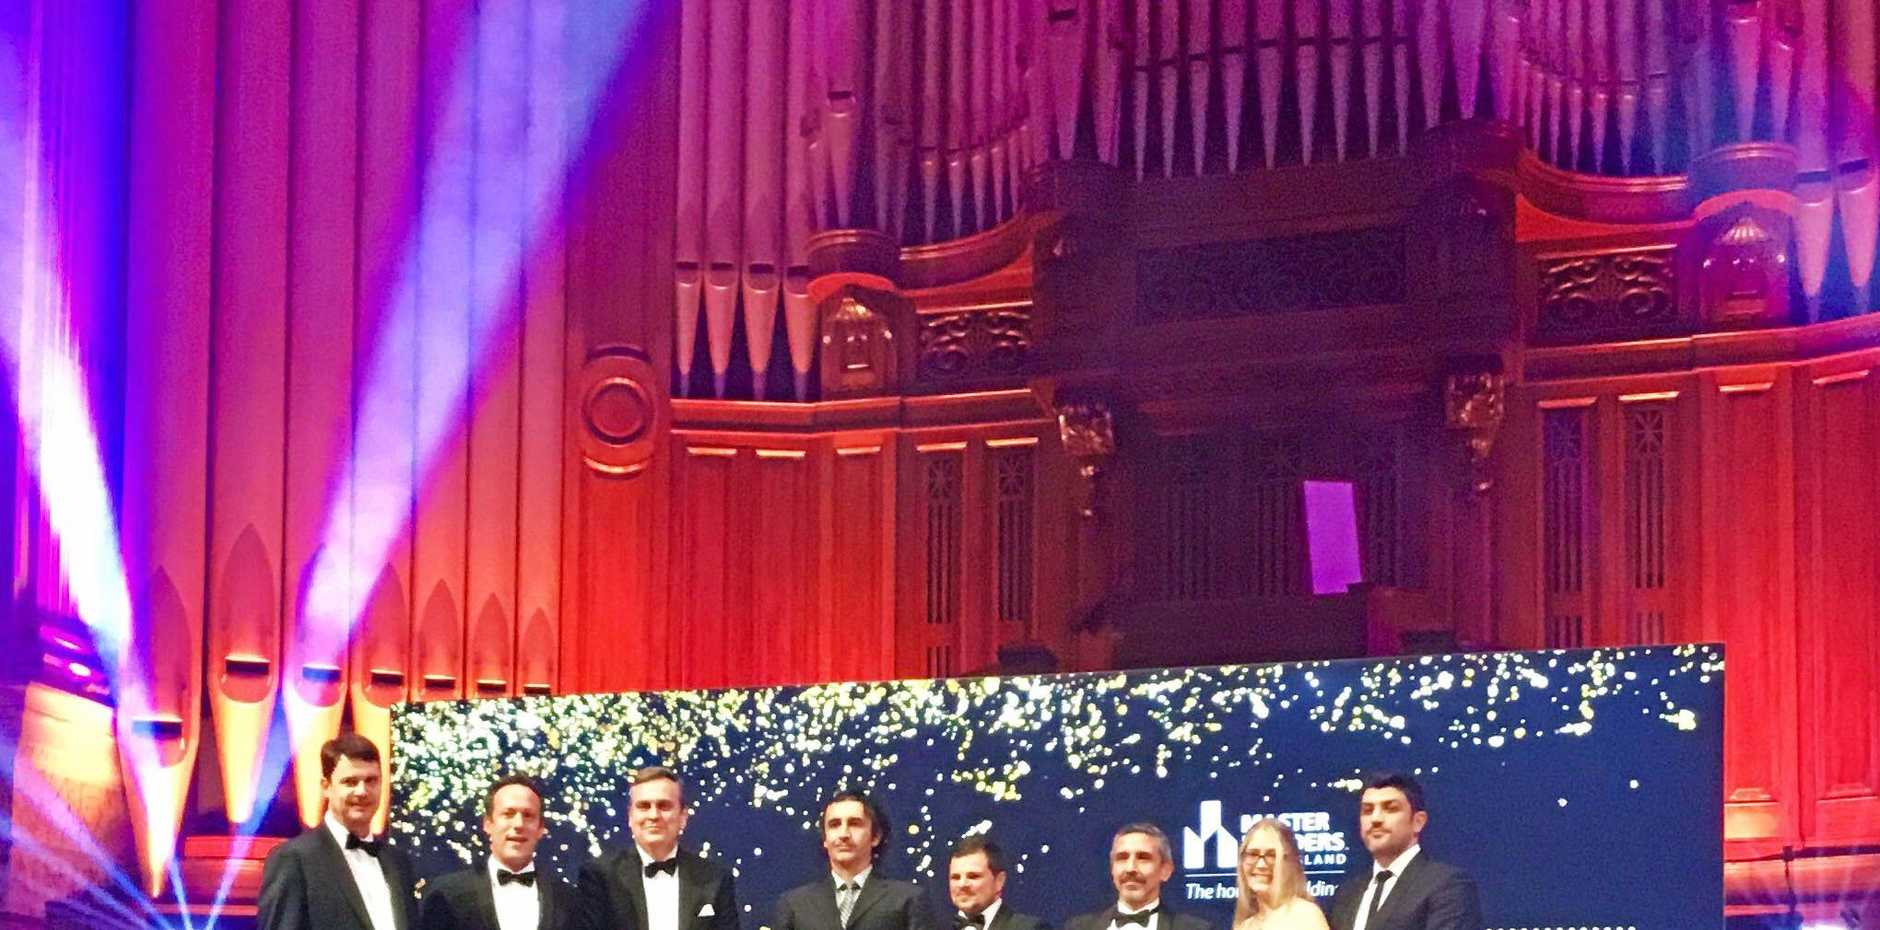 Lendlease, winners of the Project of the Year and Health Facilities over $20million, at the 2017 Master Builders Queensland Housing and Construction Awards at Brisbane City Hall.